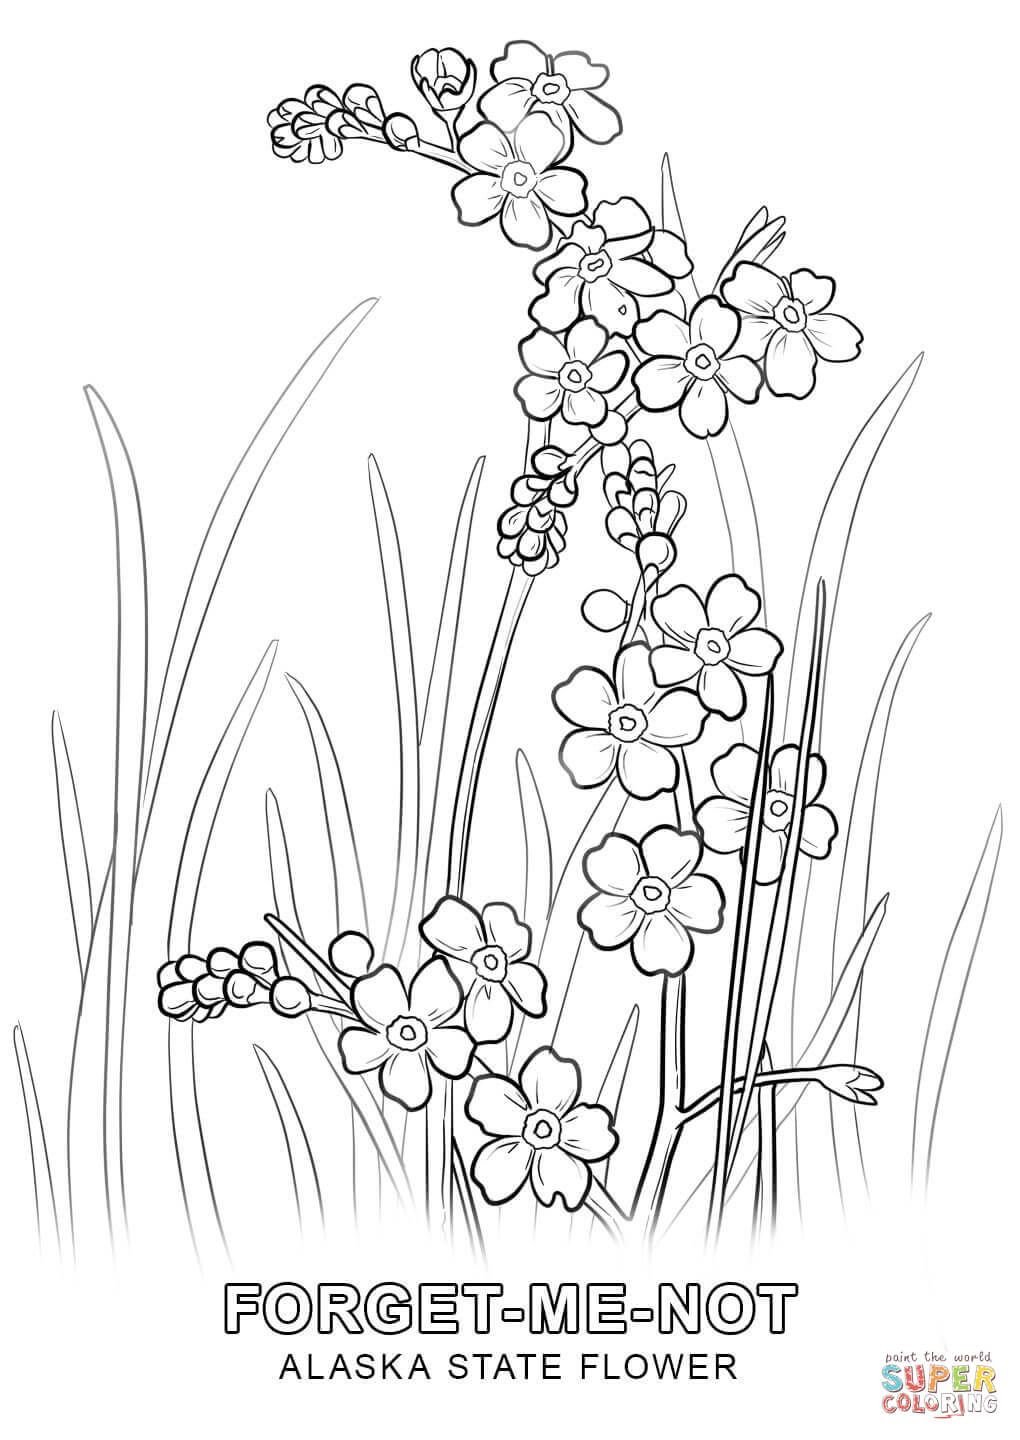 Alaska State Flower Coloring Page Free Printable